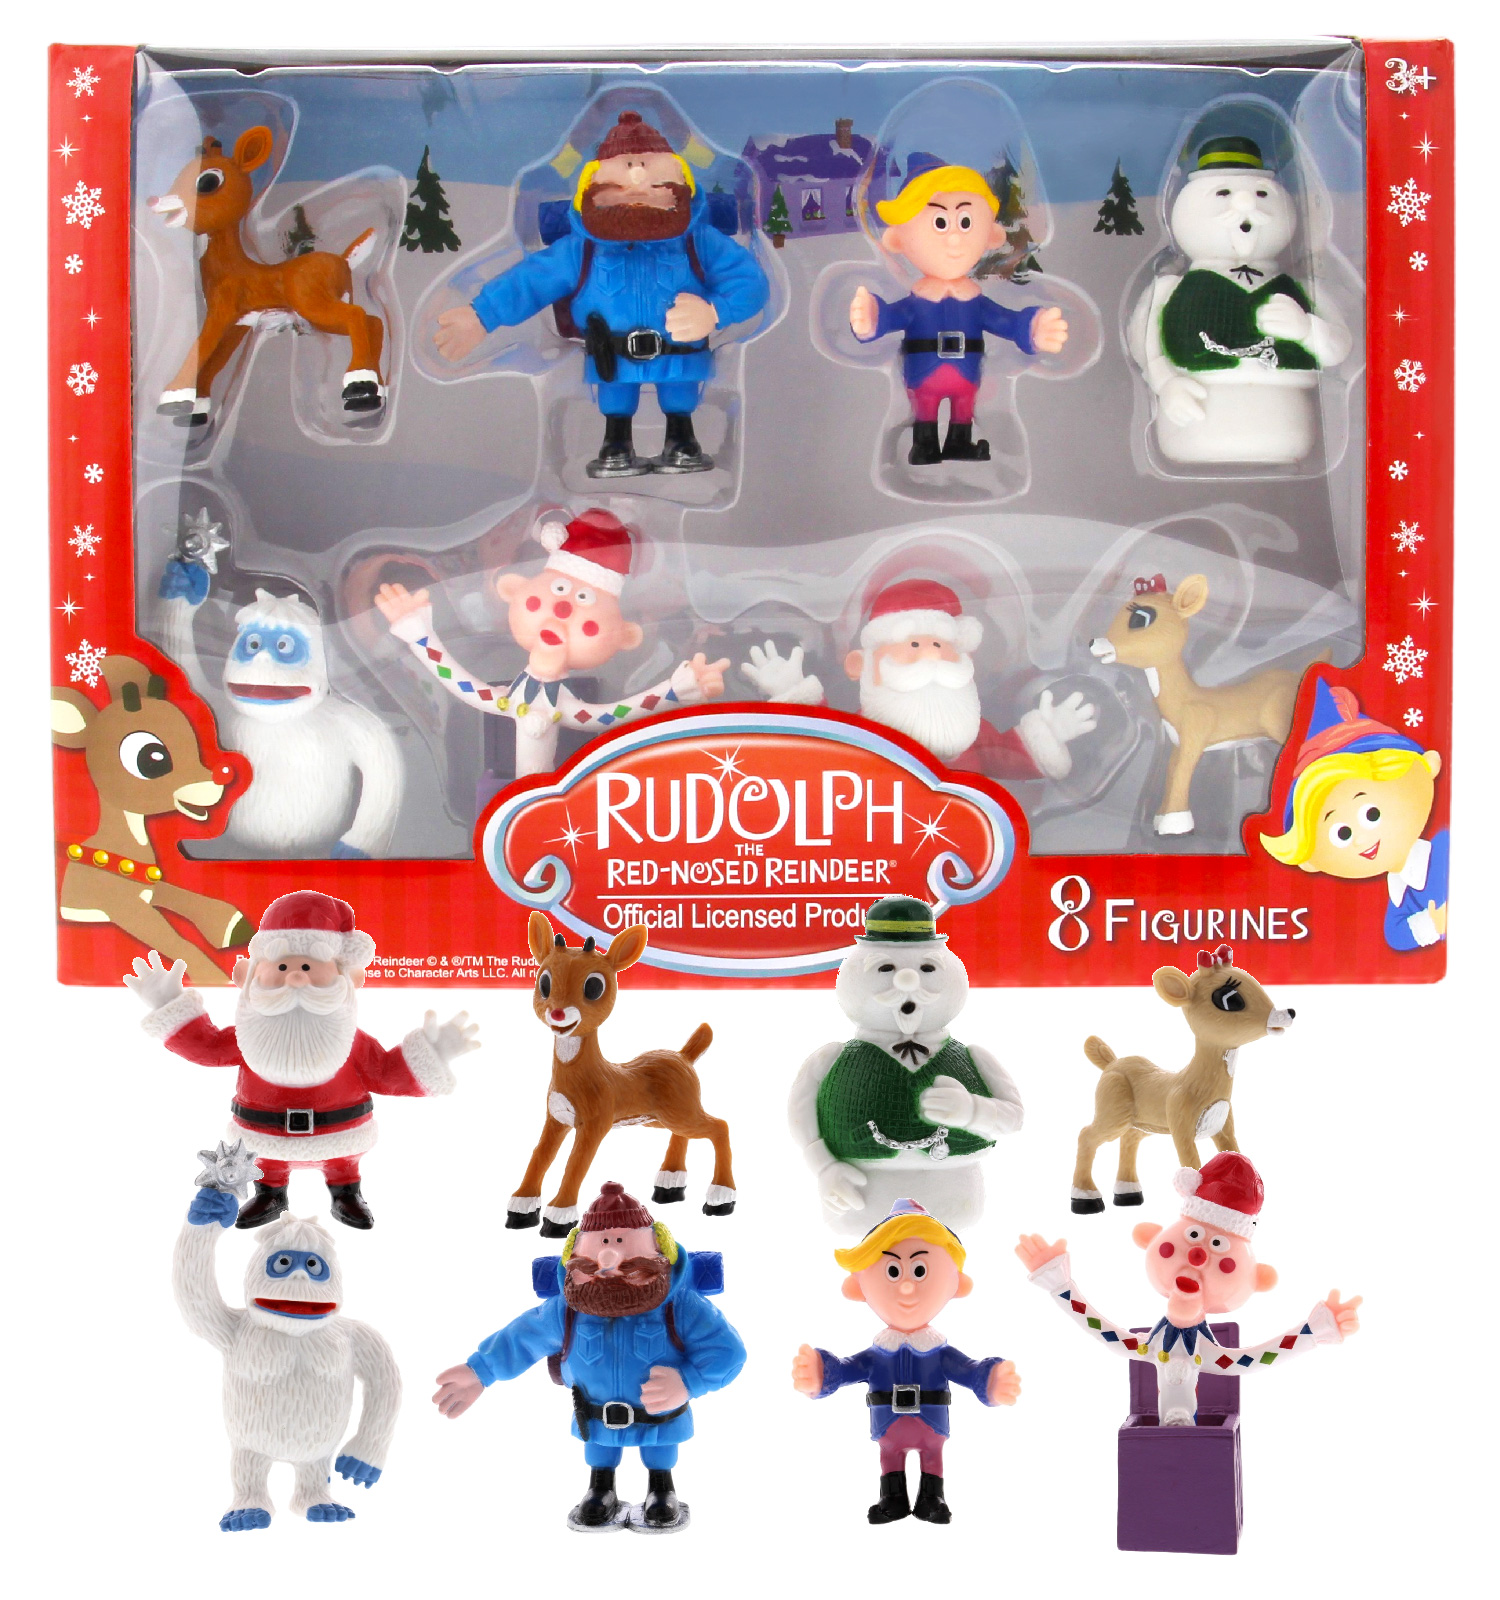 rudolph the red nosed reindeer figurines from the classic movie set of 8 ebay details about rudolph the red nosed reindeer figurines from the classic movie set of 8